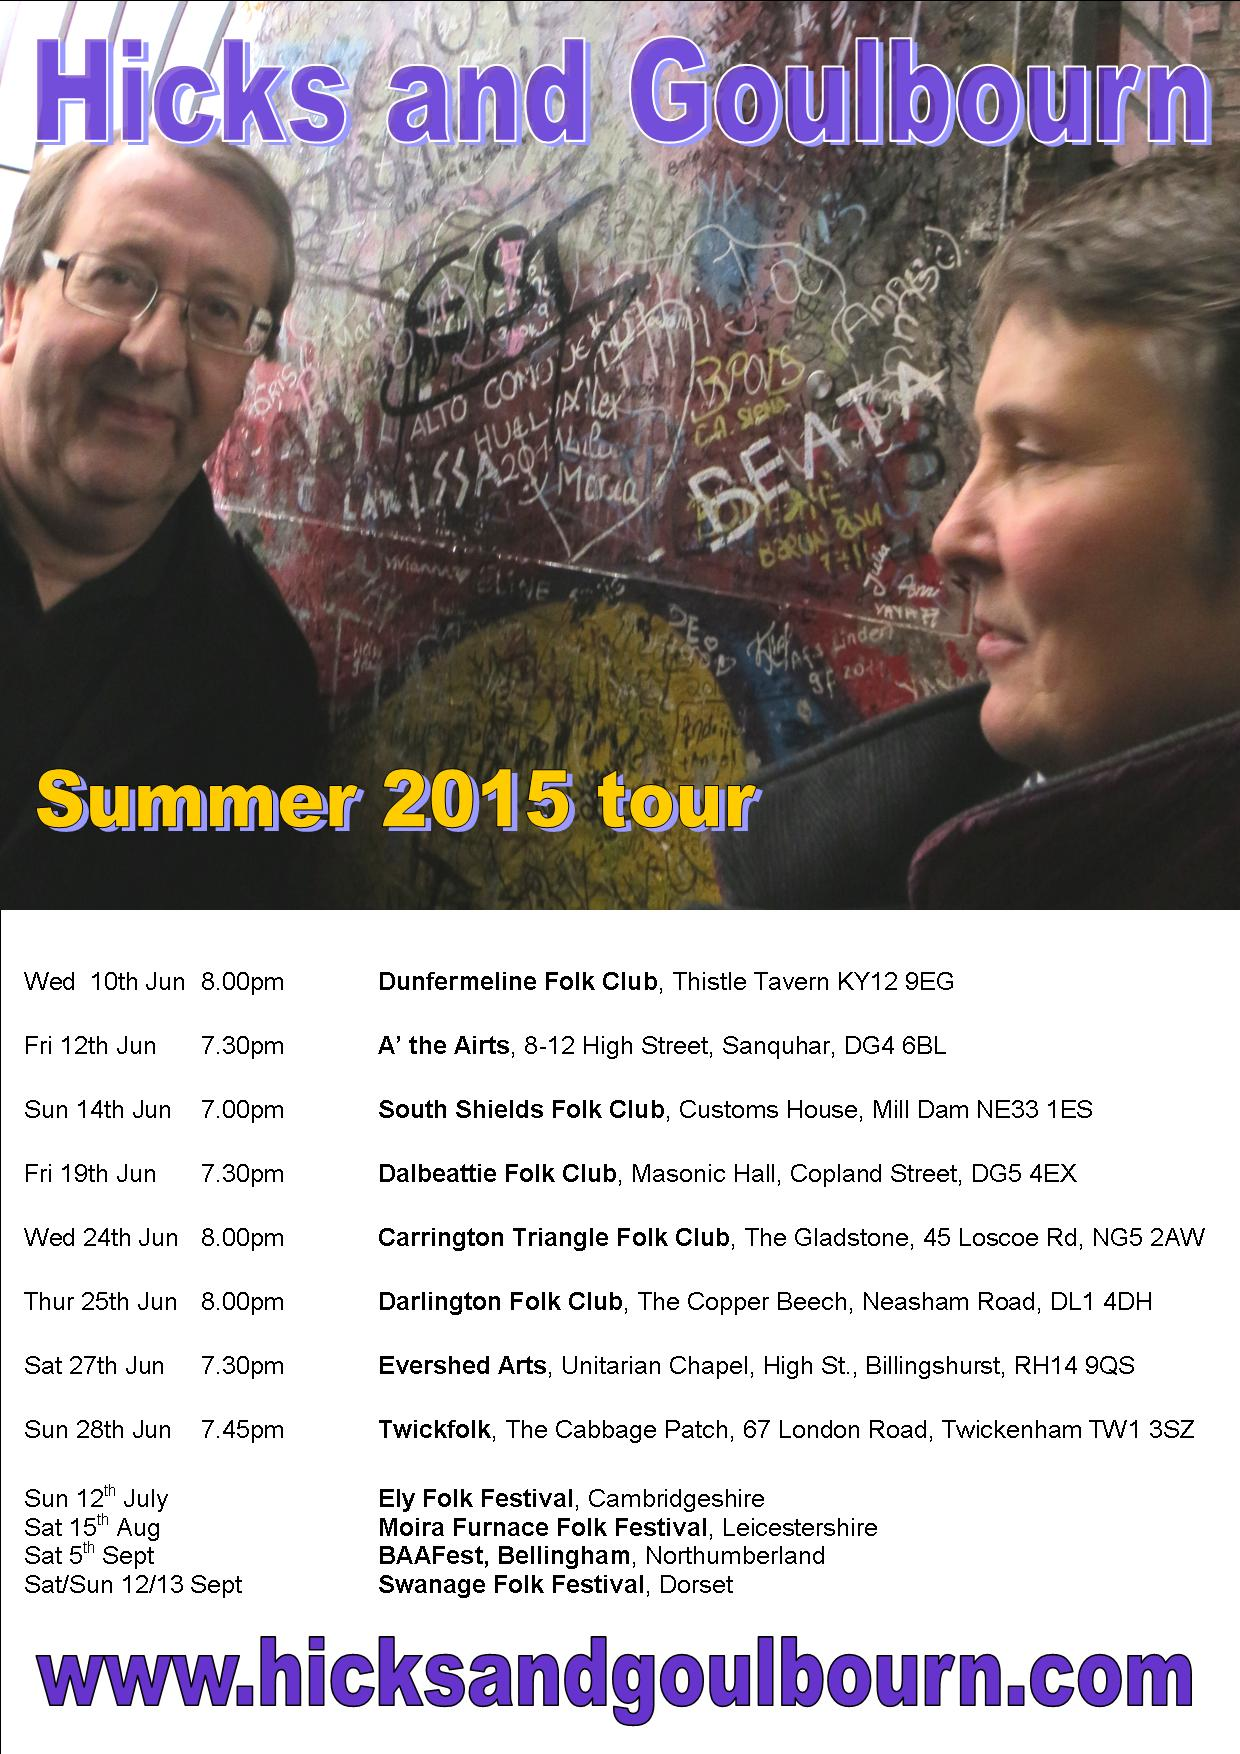 Hicks and Goulbourn tour dates summer 2015